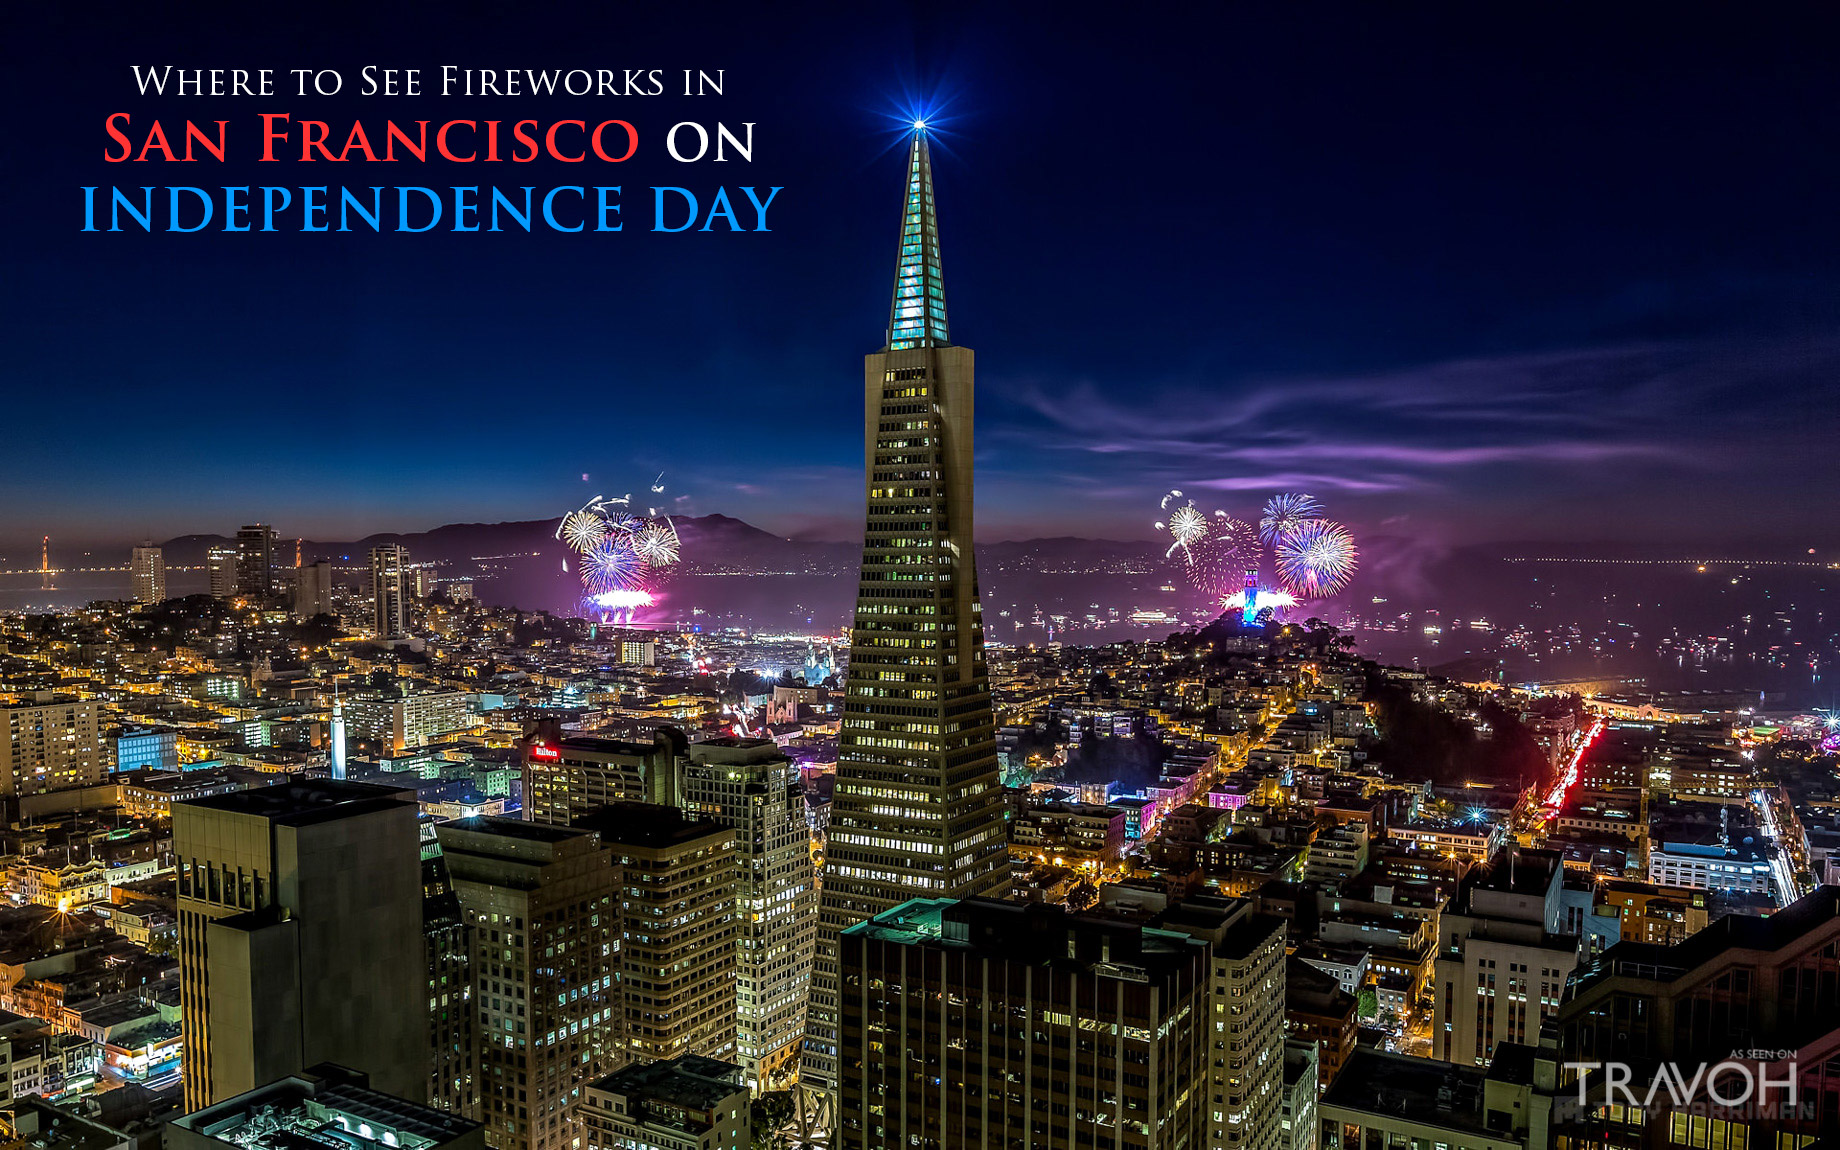 Where to See Fireworks in San Francisco on Independence Day